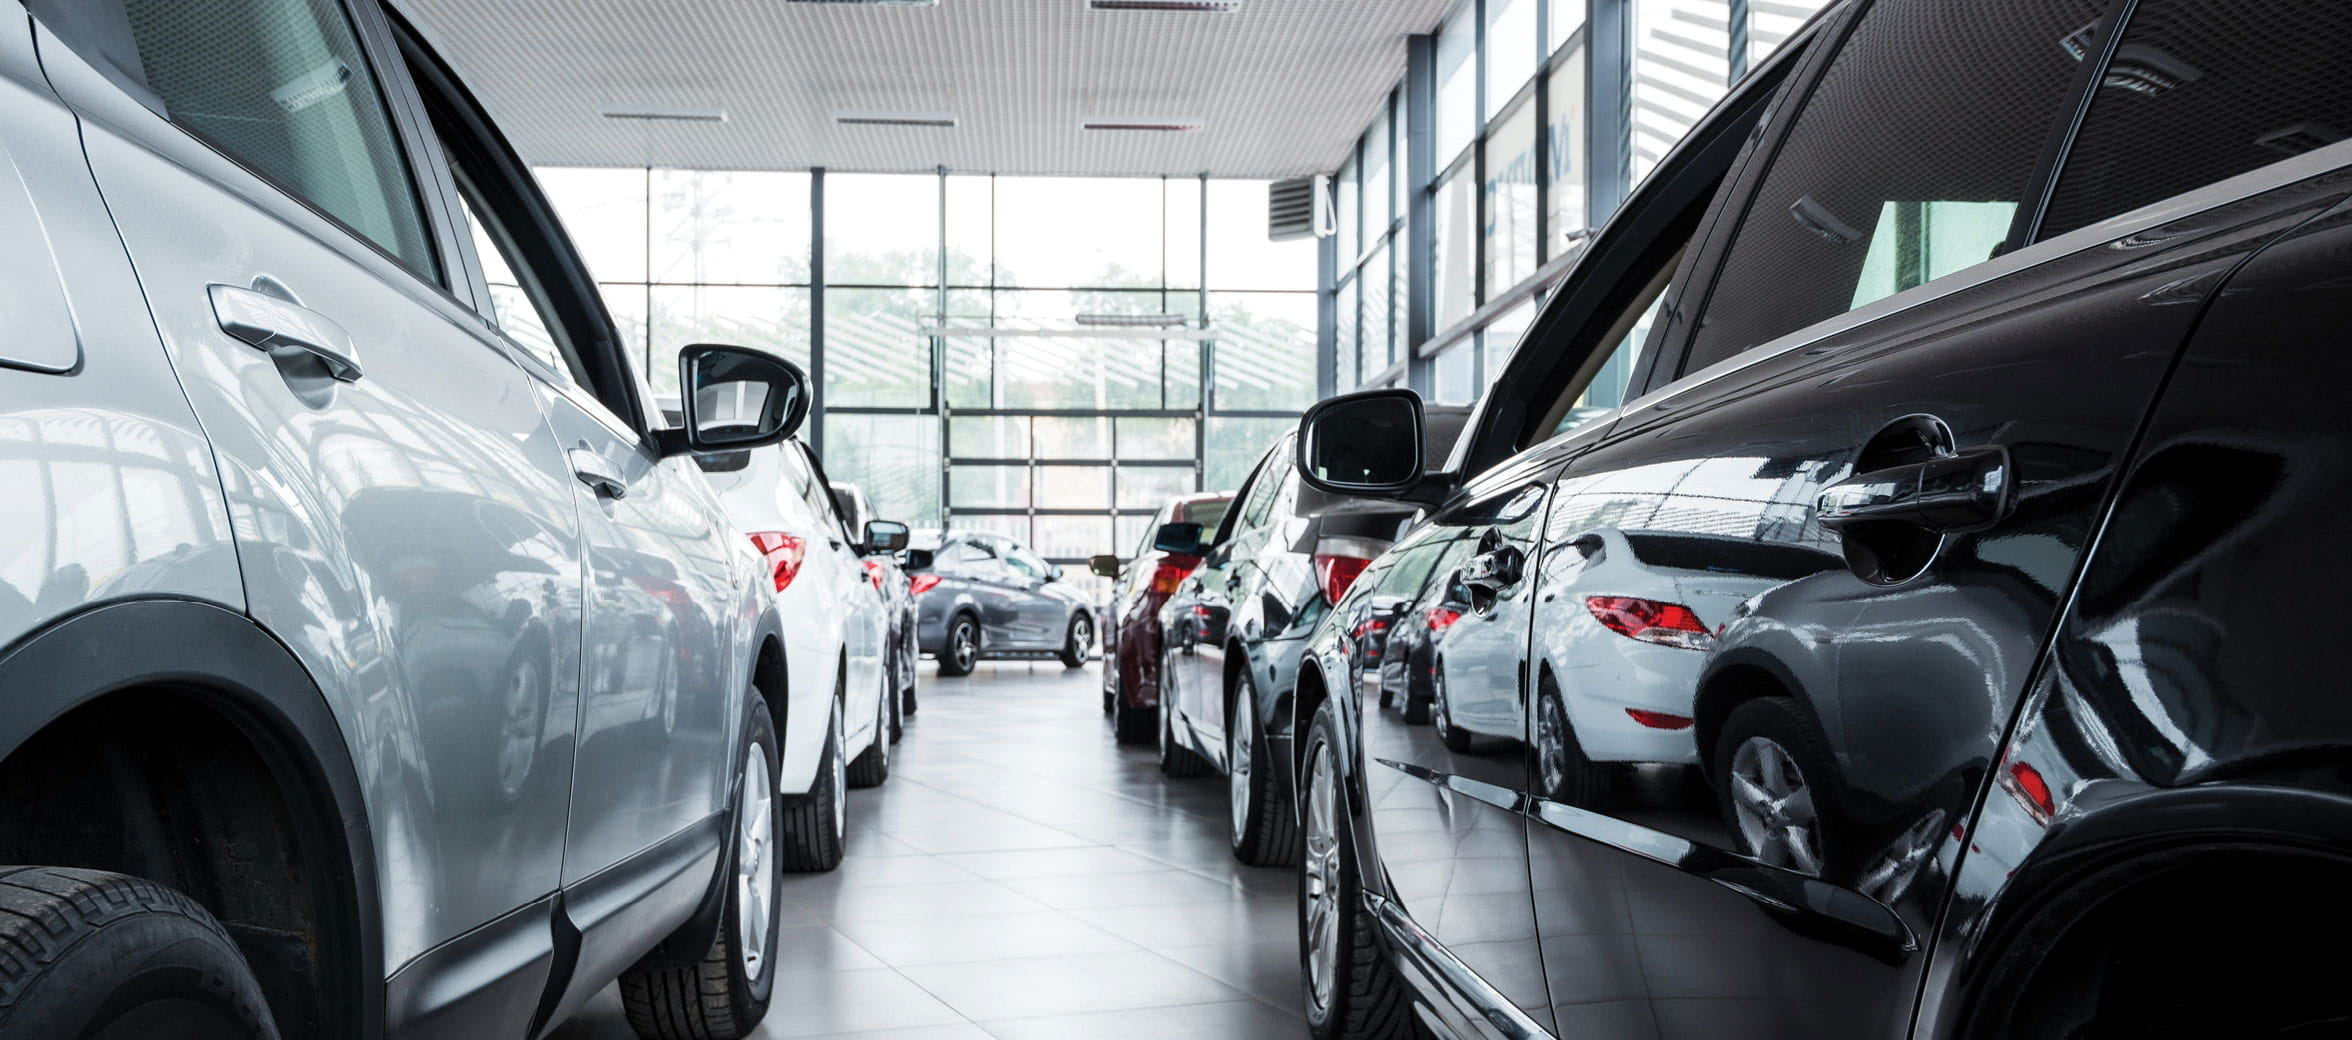 Automotive Dealership Capital Services